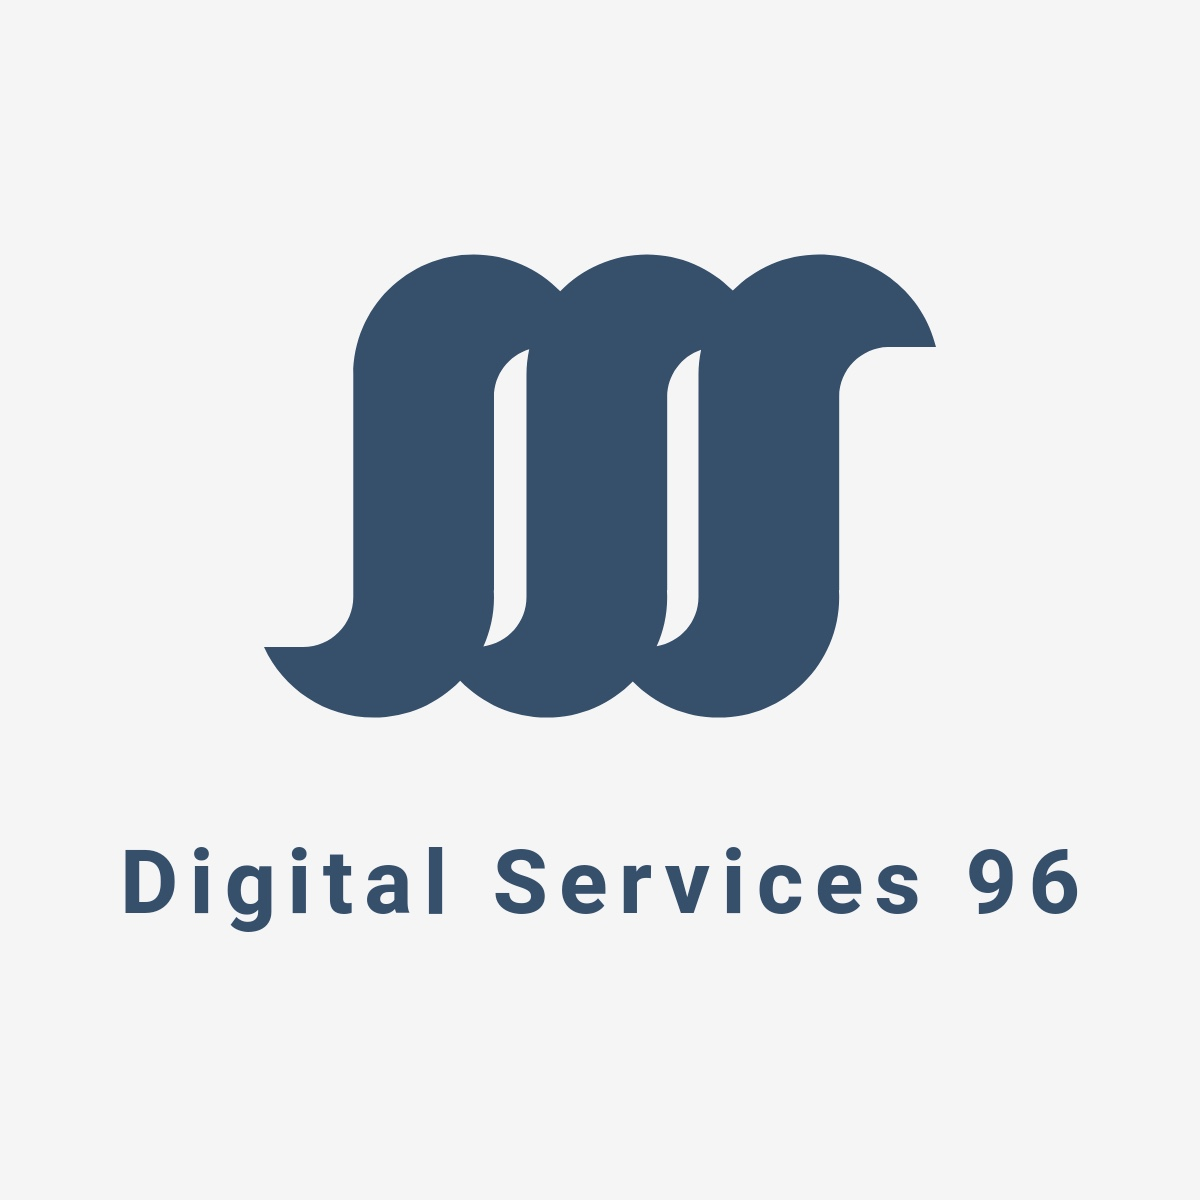 Digital Services 96